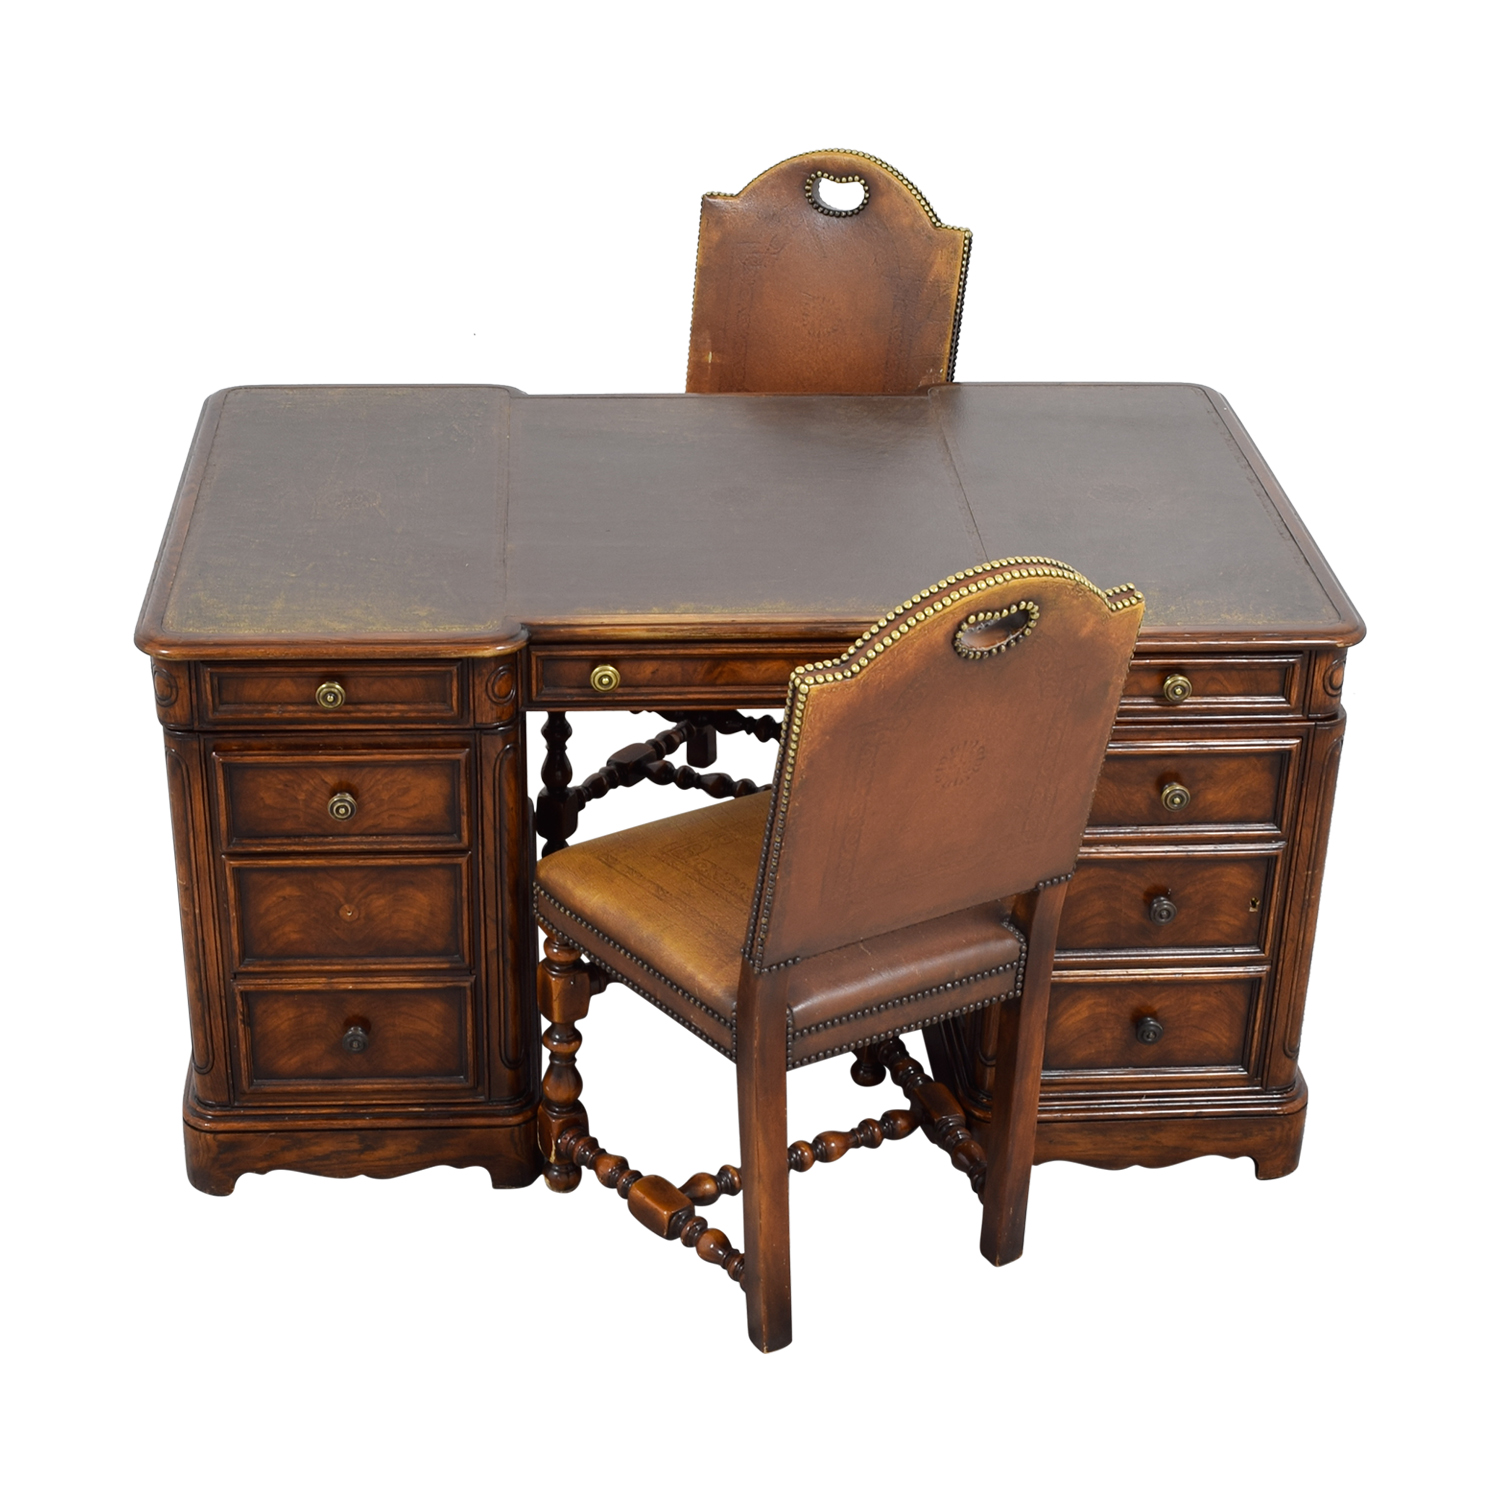 90% OFF   ABC Carpet U0026 Home ABC Carpet U0026 Home Two Sided Desk And Chairs /  Tables